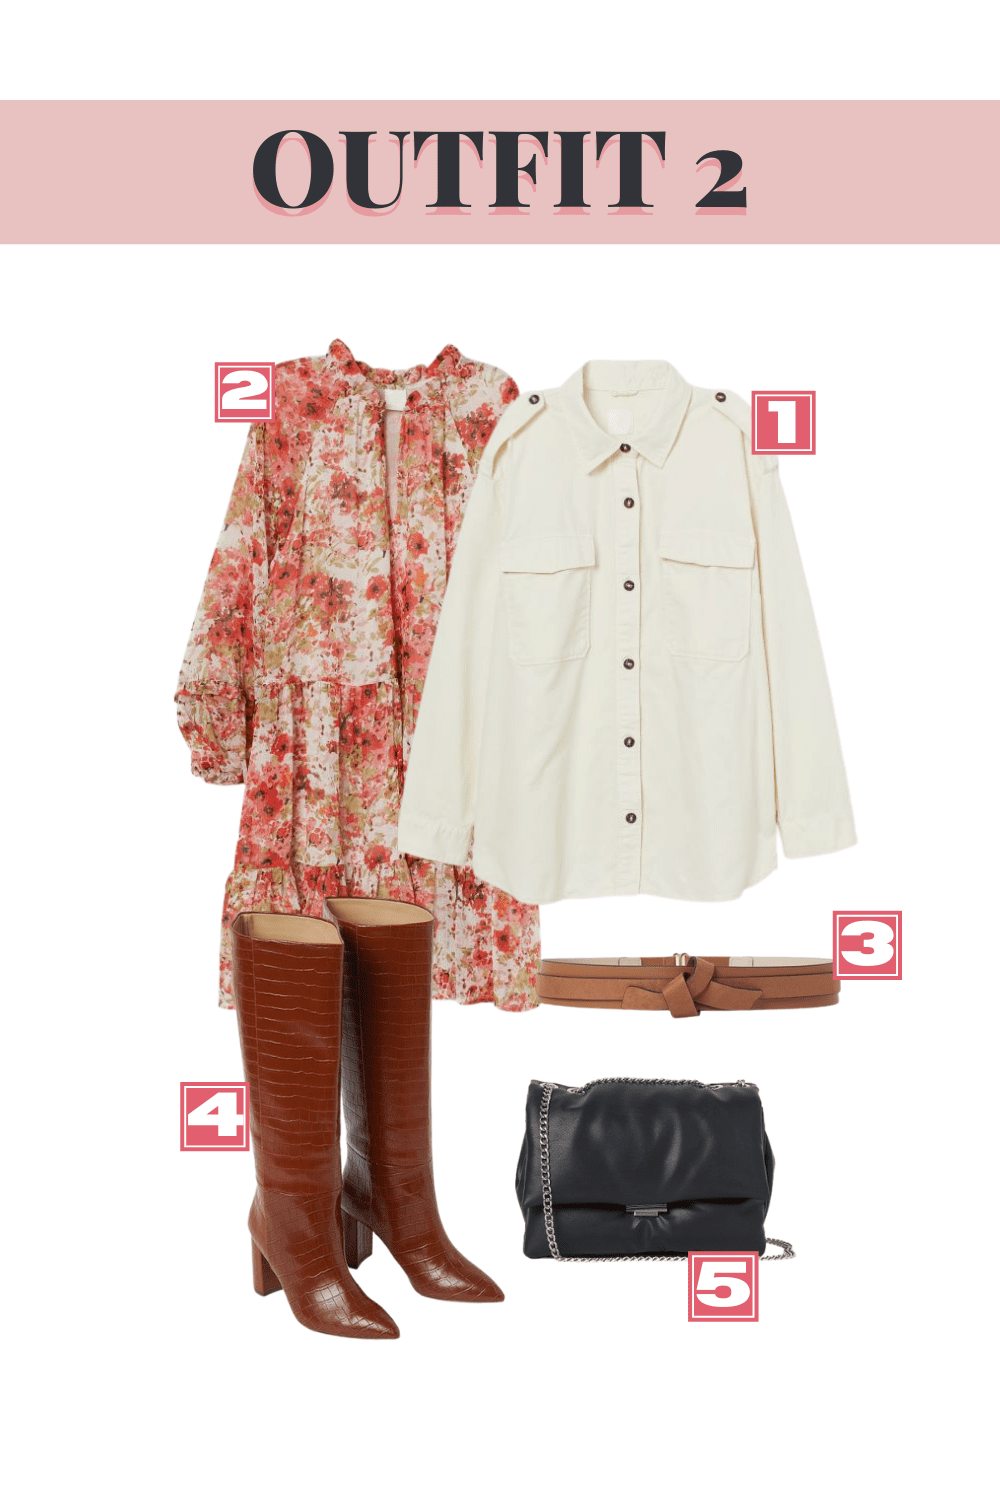 H&M Fall Top Picks - Outfit 2